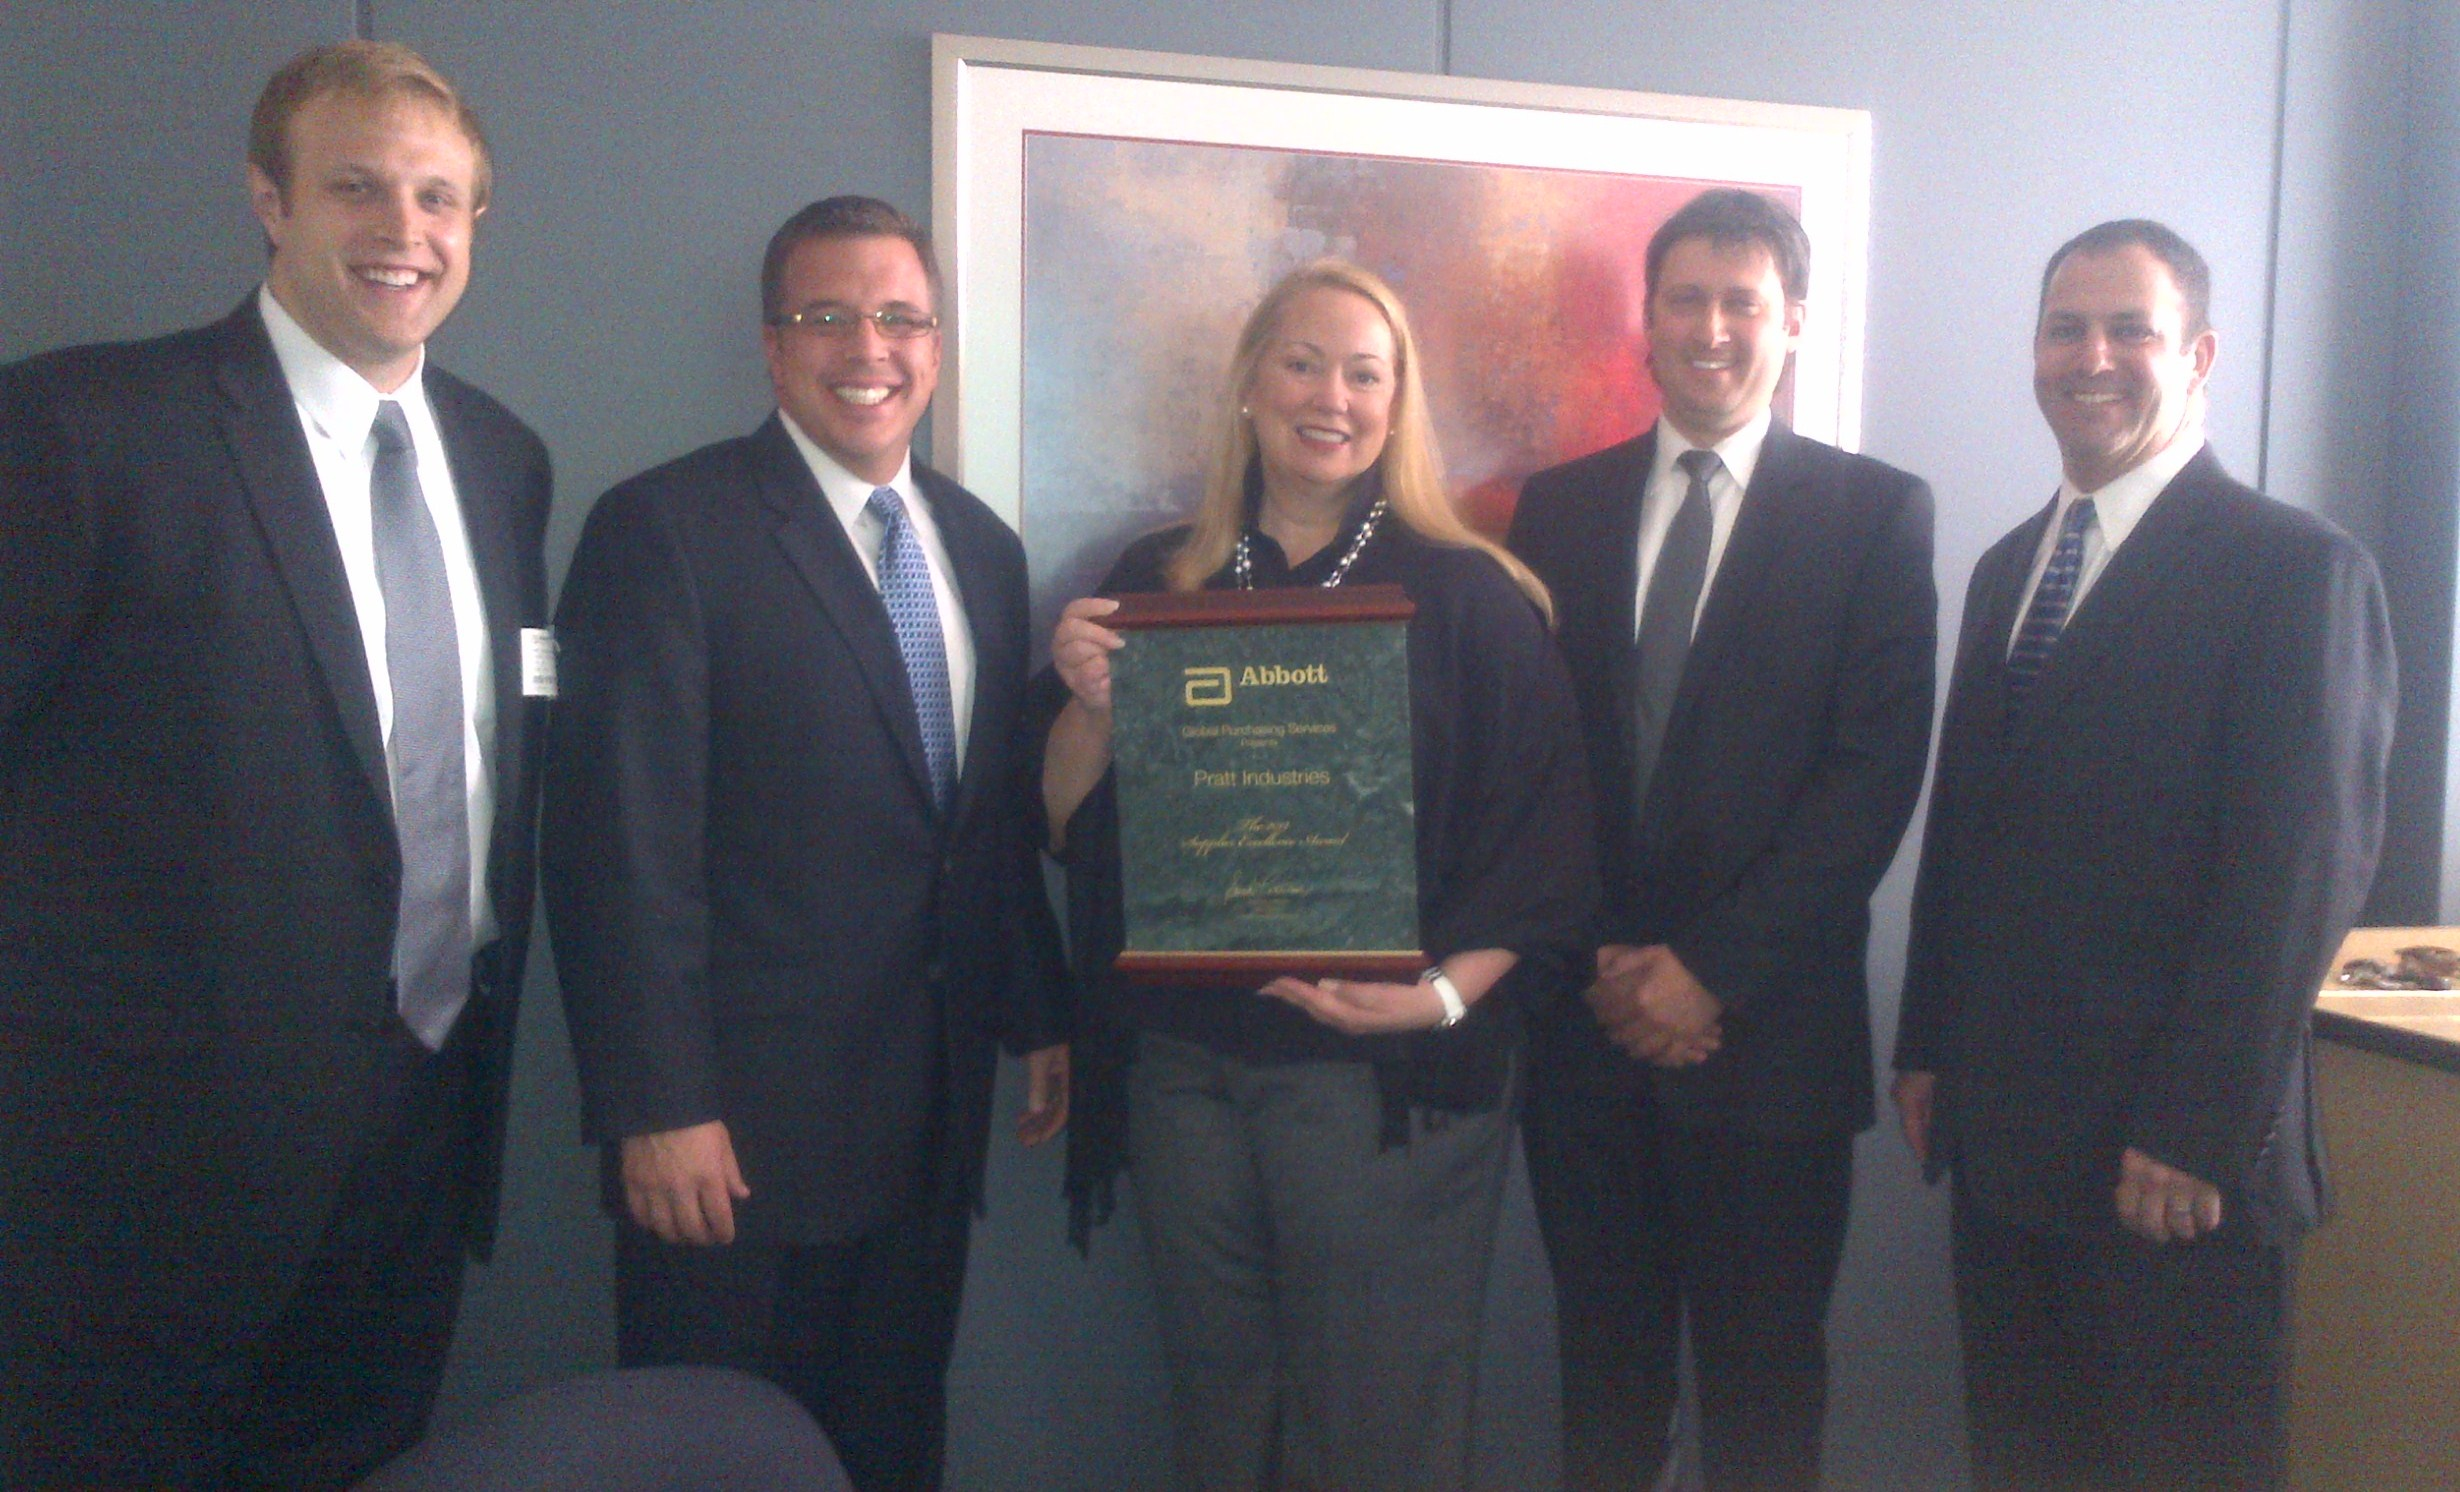 Sarah M. Catterson – Abbott's Vice President of Global Purchasing, presents Pratt Industries with the 2011 Supplier Excellence Award. Receiving on behalf of Pratt are (from left) Patrick Bengelink (Sales Rep), David Gill (Sales Manager, Grand Rapids), Craig Stucky (General Manager, Grand Rapids) and Richard Turner (Strategic Account Manager).